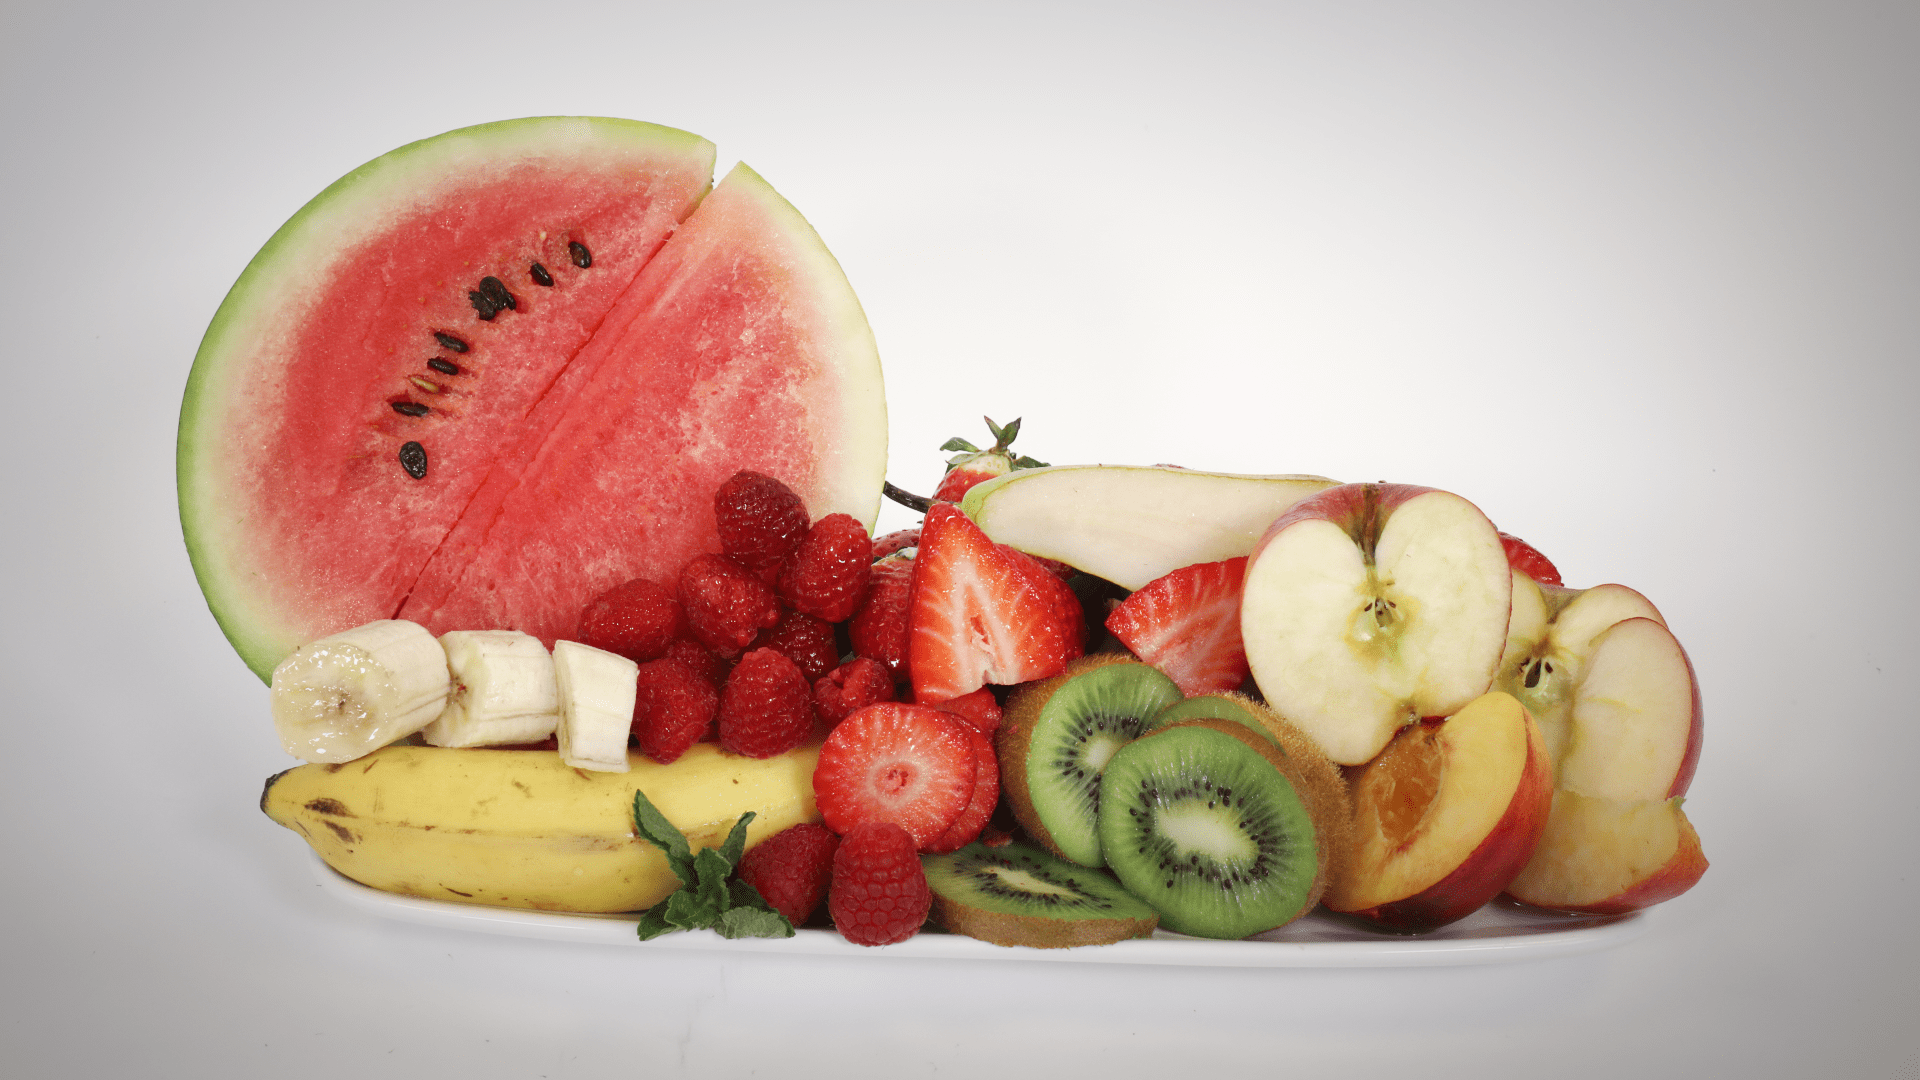 Image of a display of fresh fruit cut up or sliced, including watermelon, banana, raspberries, strawberries, kiwi and apple